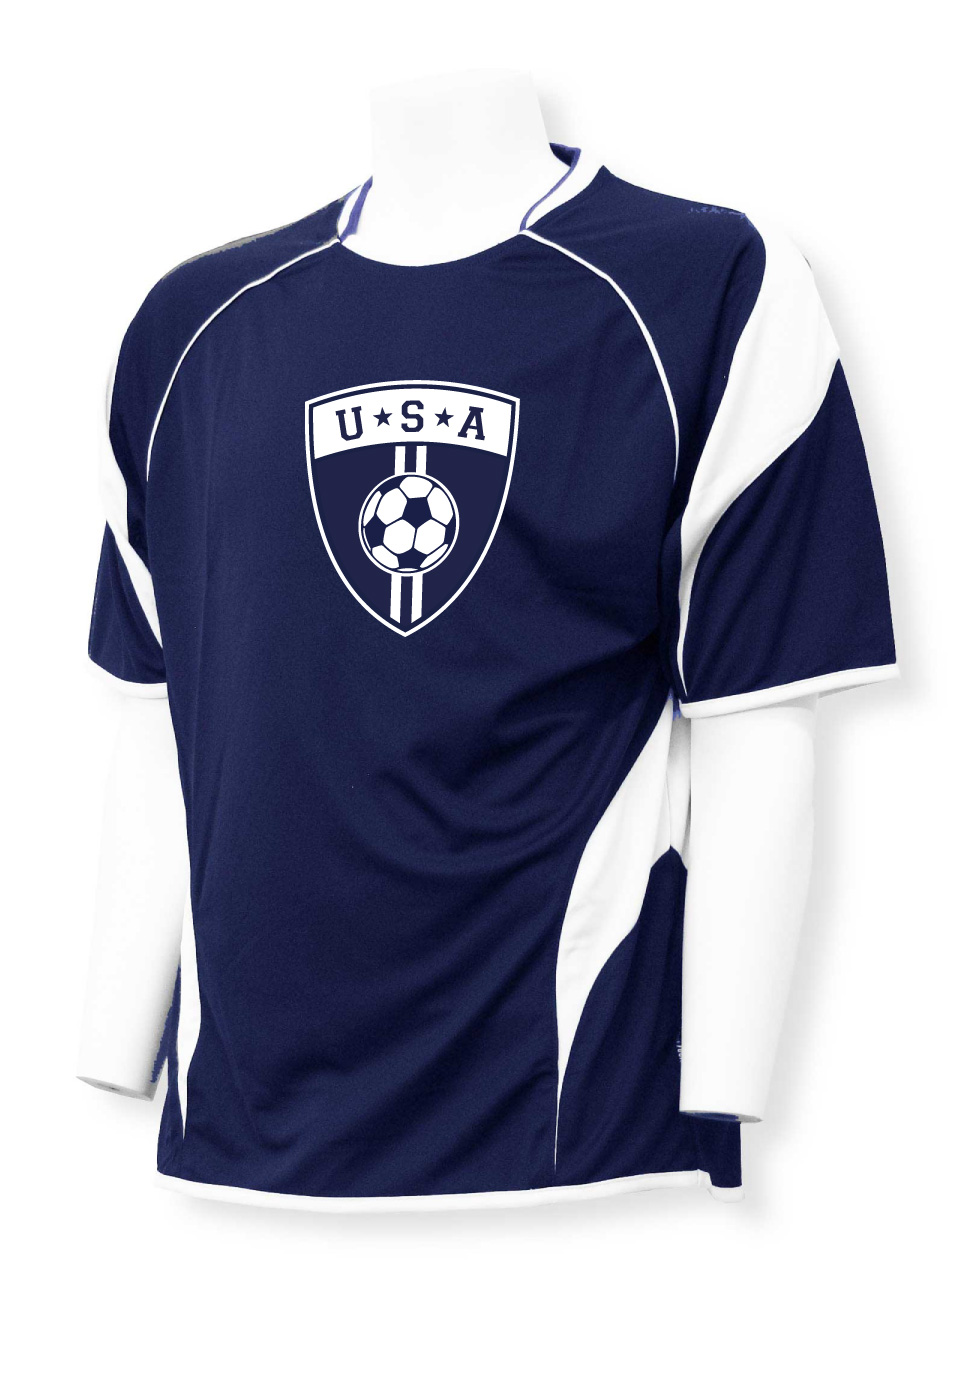 USA Soccer jersey in navy blue with USA soccer crest logo by Code Four Athletics